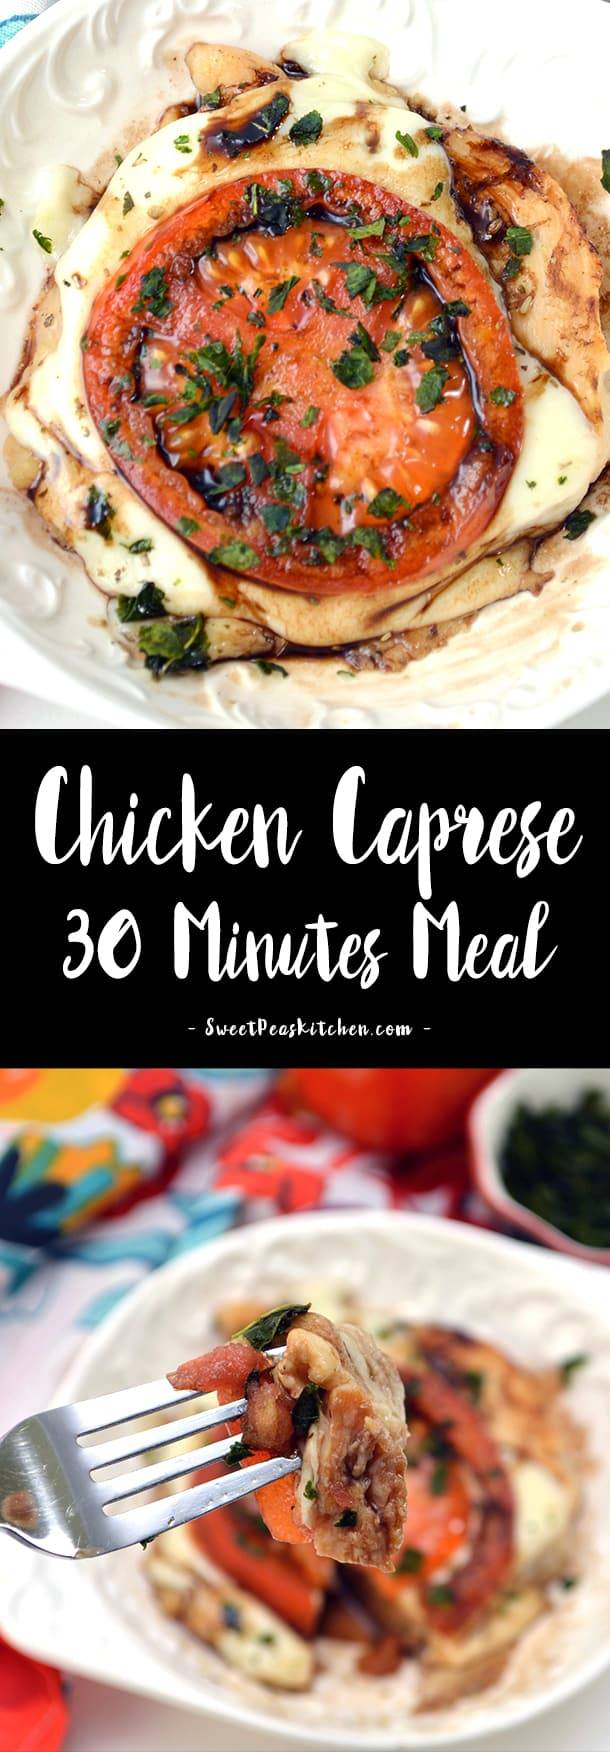 Chicken Caprese – 30 Minutes or Less Meal